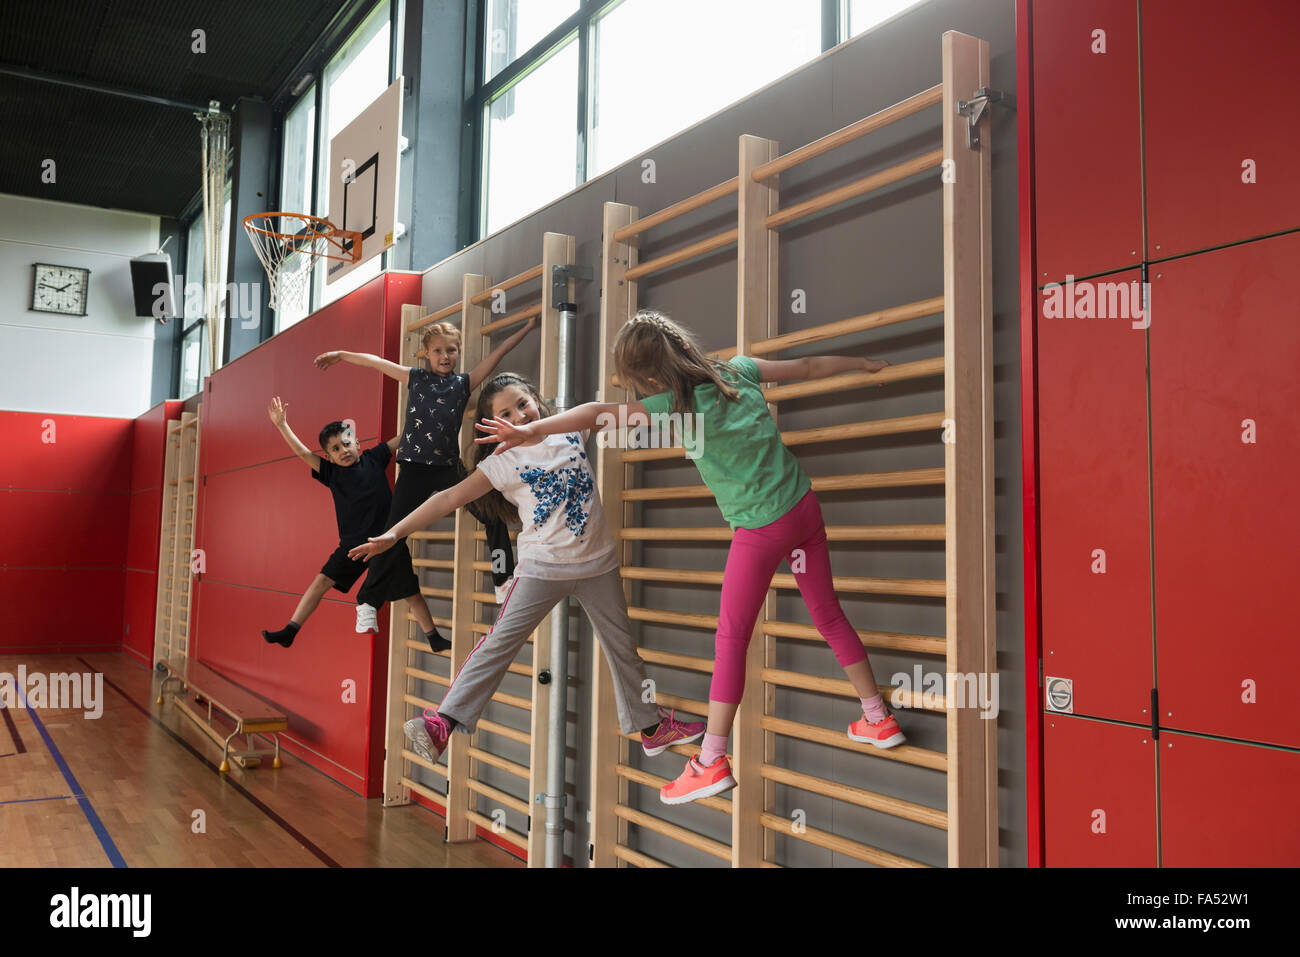 Four children exercising on wall bars in sports hall, Munich, Bavaria, Germany - Stock Image